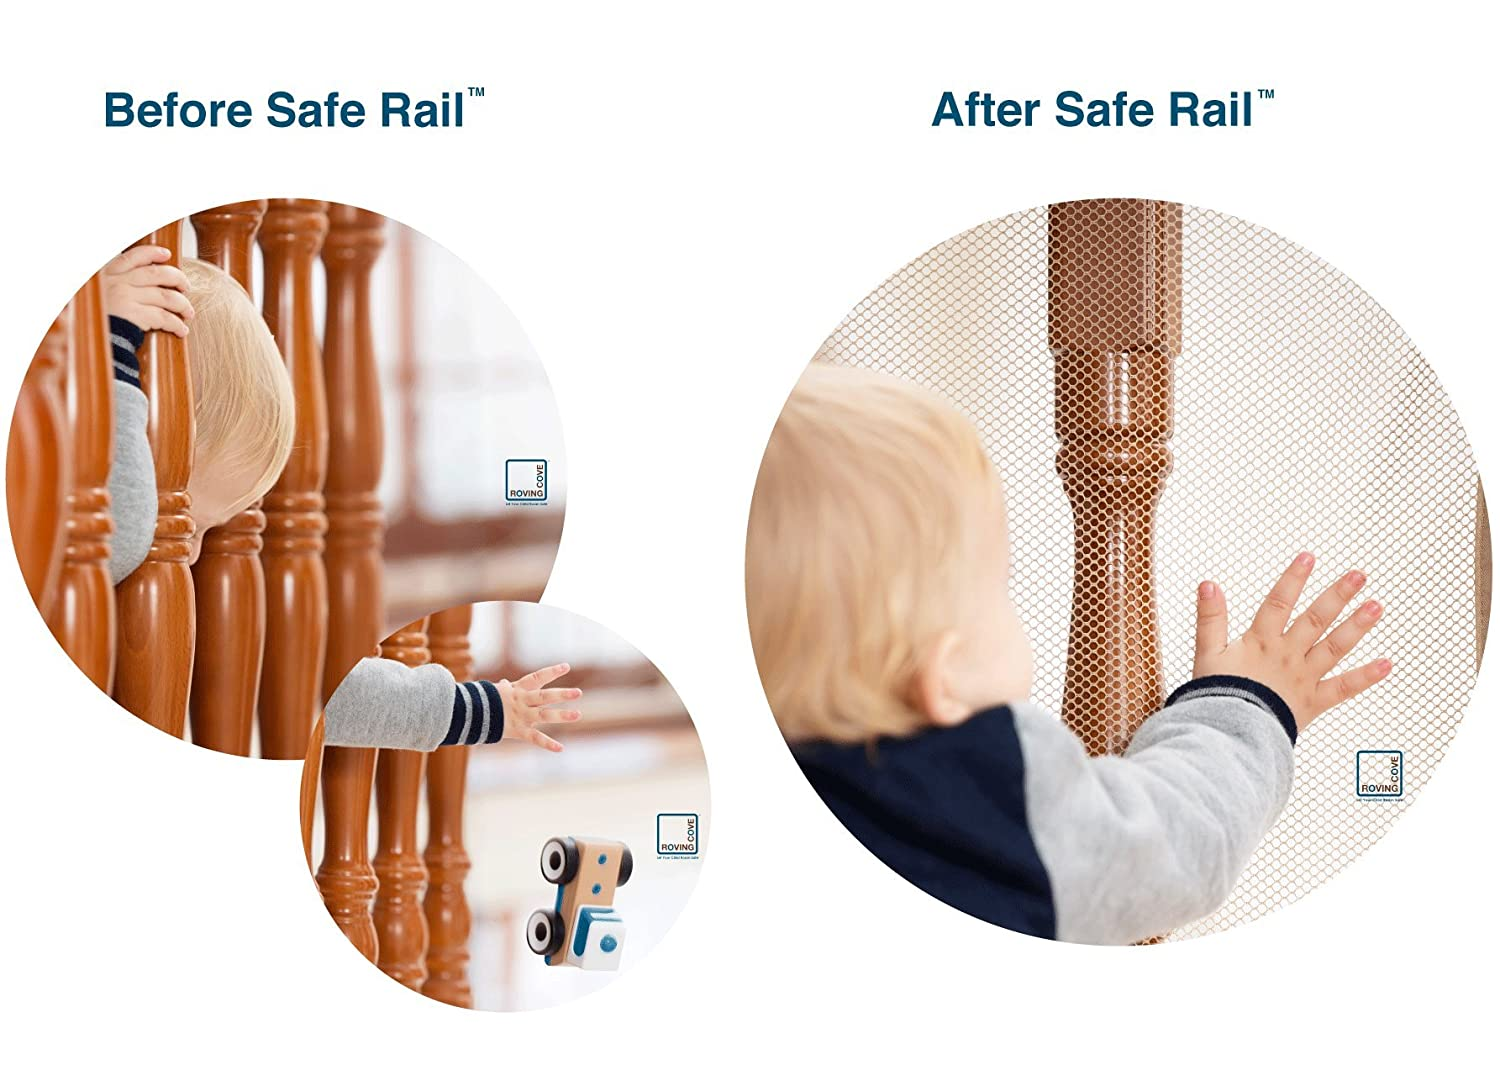 Superb Amazon.com : Roving Cove Safe Rail   10ft L X 3ft H   INDOOR Balcony And  Stairway Safety Net   ALMOND Color   Banister Stair Net   Child Safety; Pet  Safety; ...